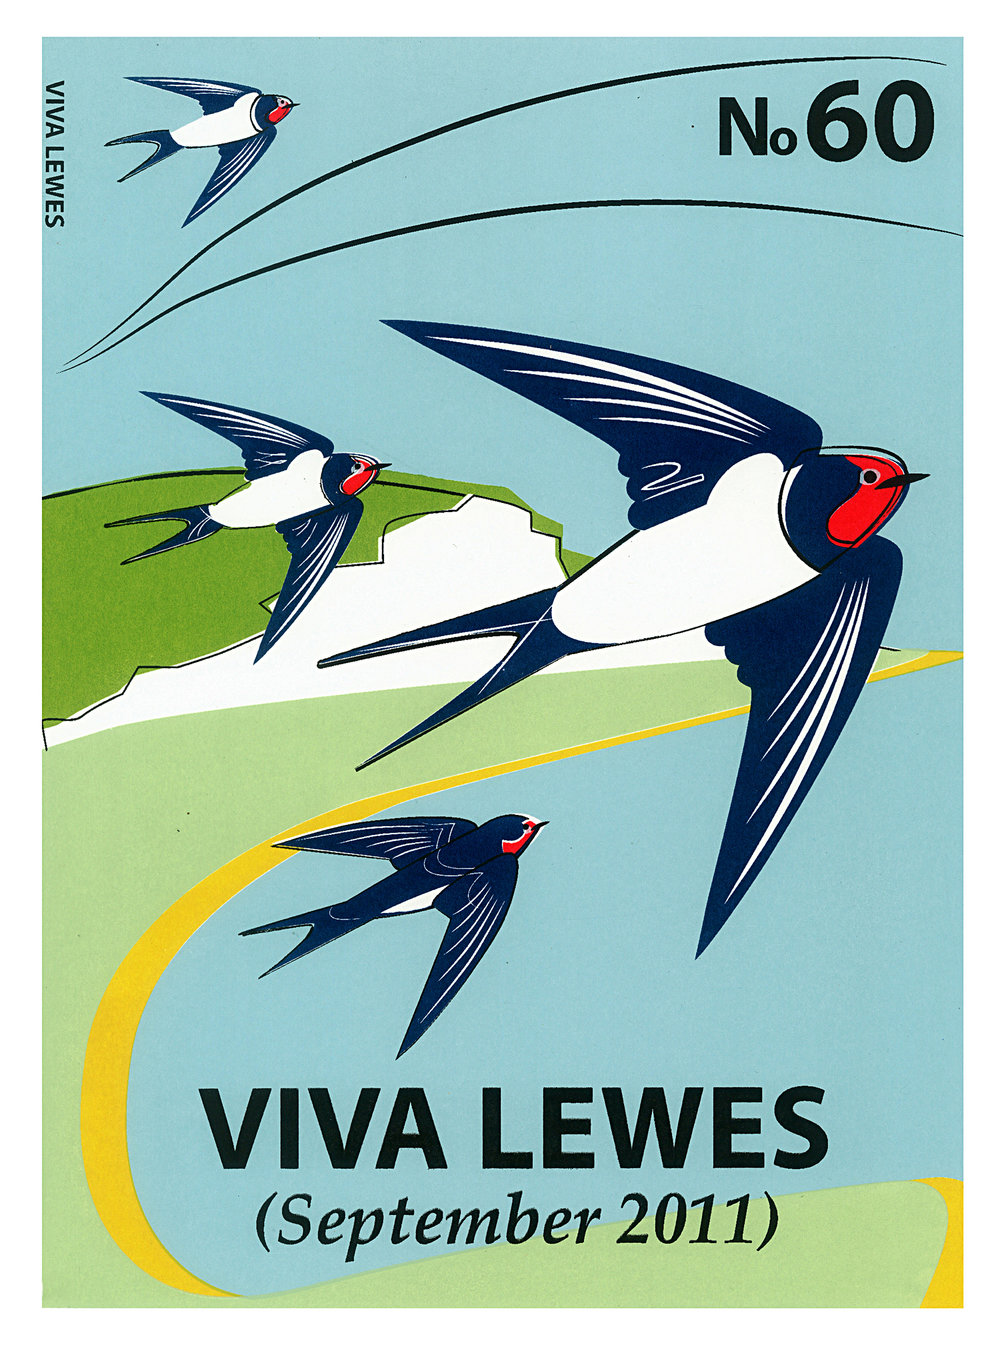 Limited Edition Swallows Screenprint